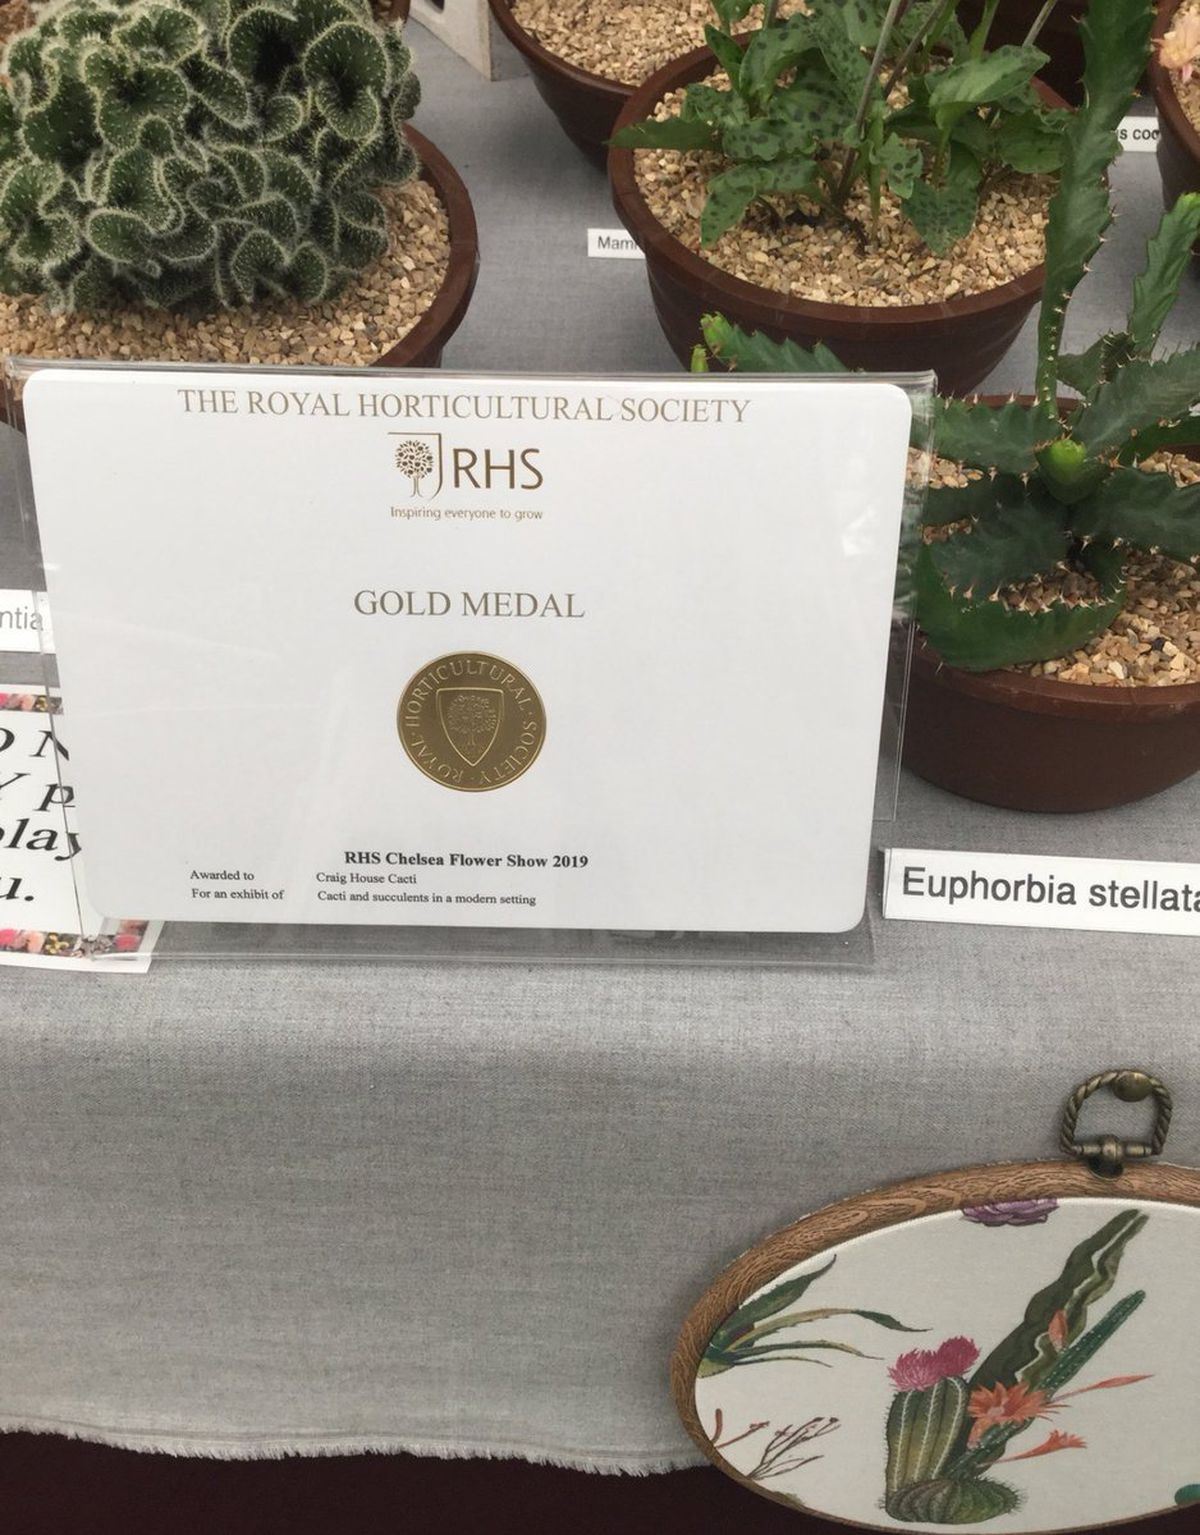 Craig House Cacti shared a photo on their Twitter page of their gold medal from Chelsea Flower Show